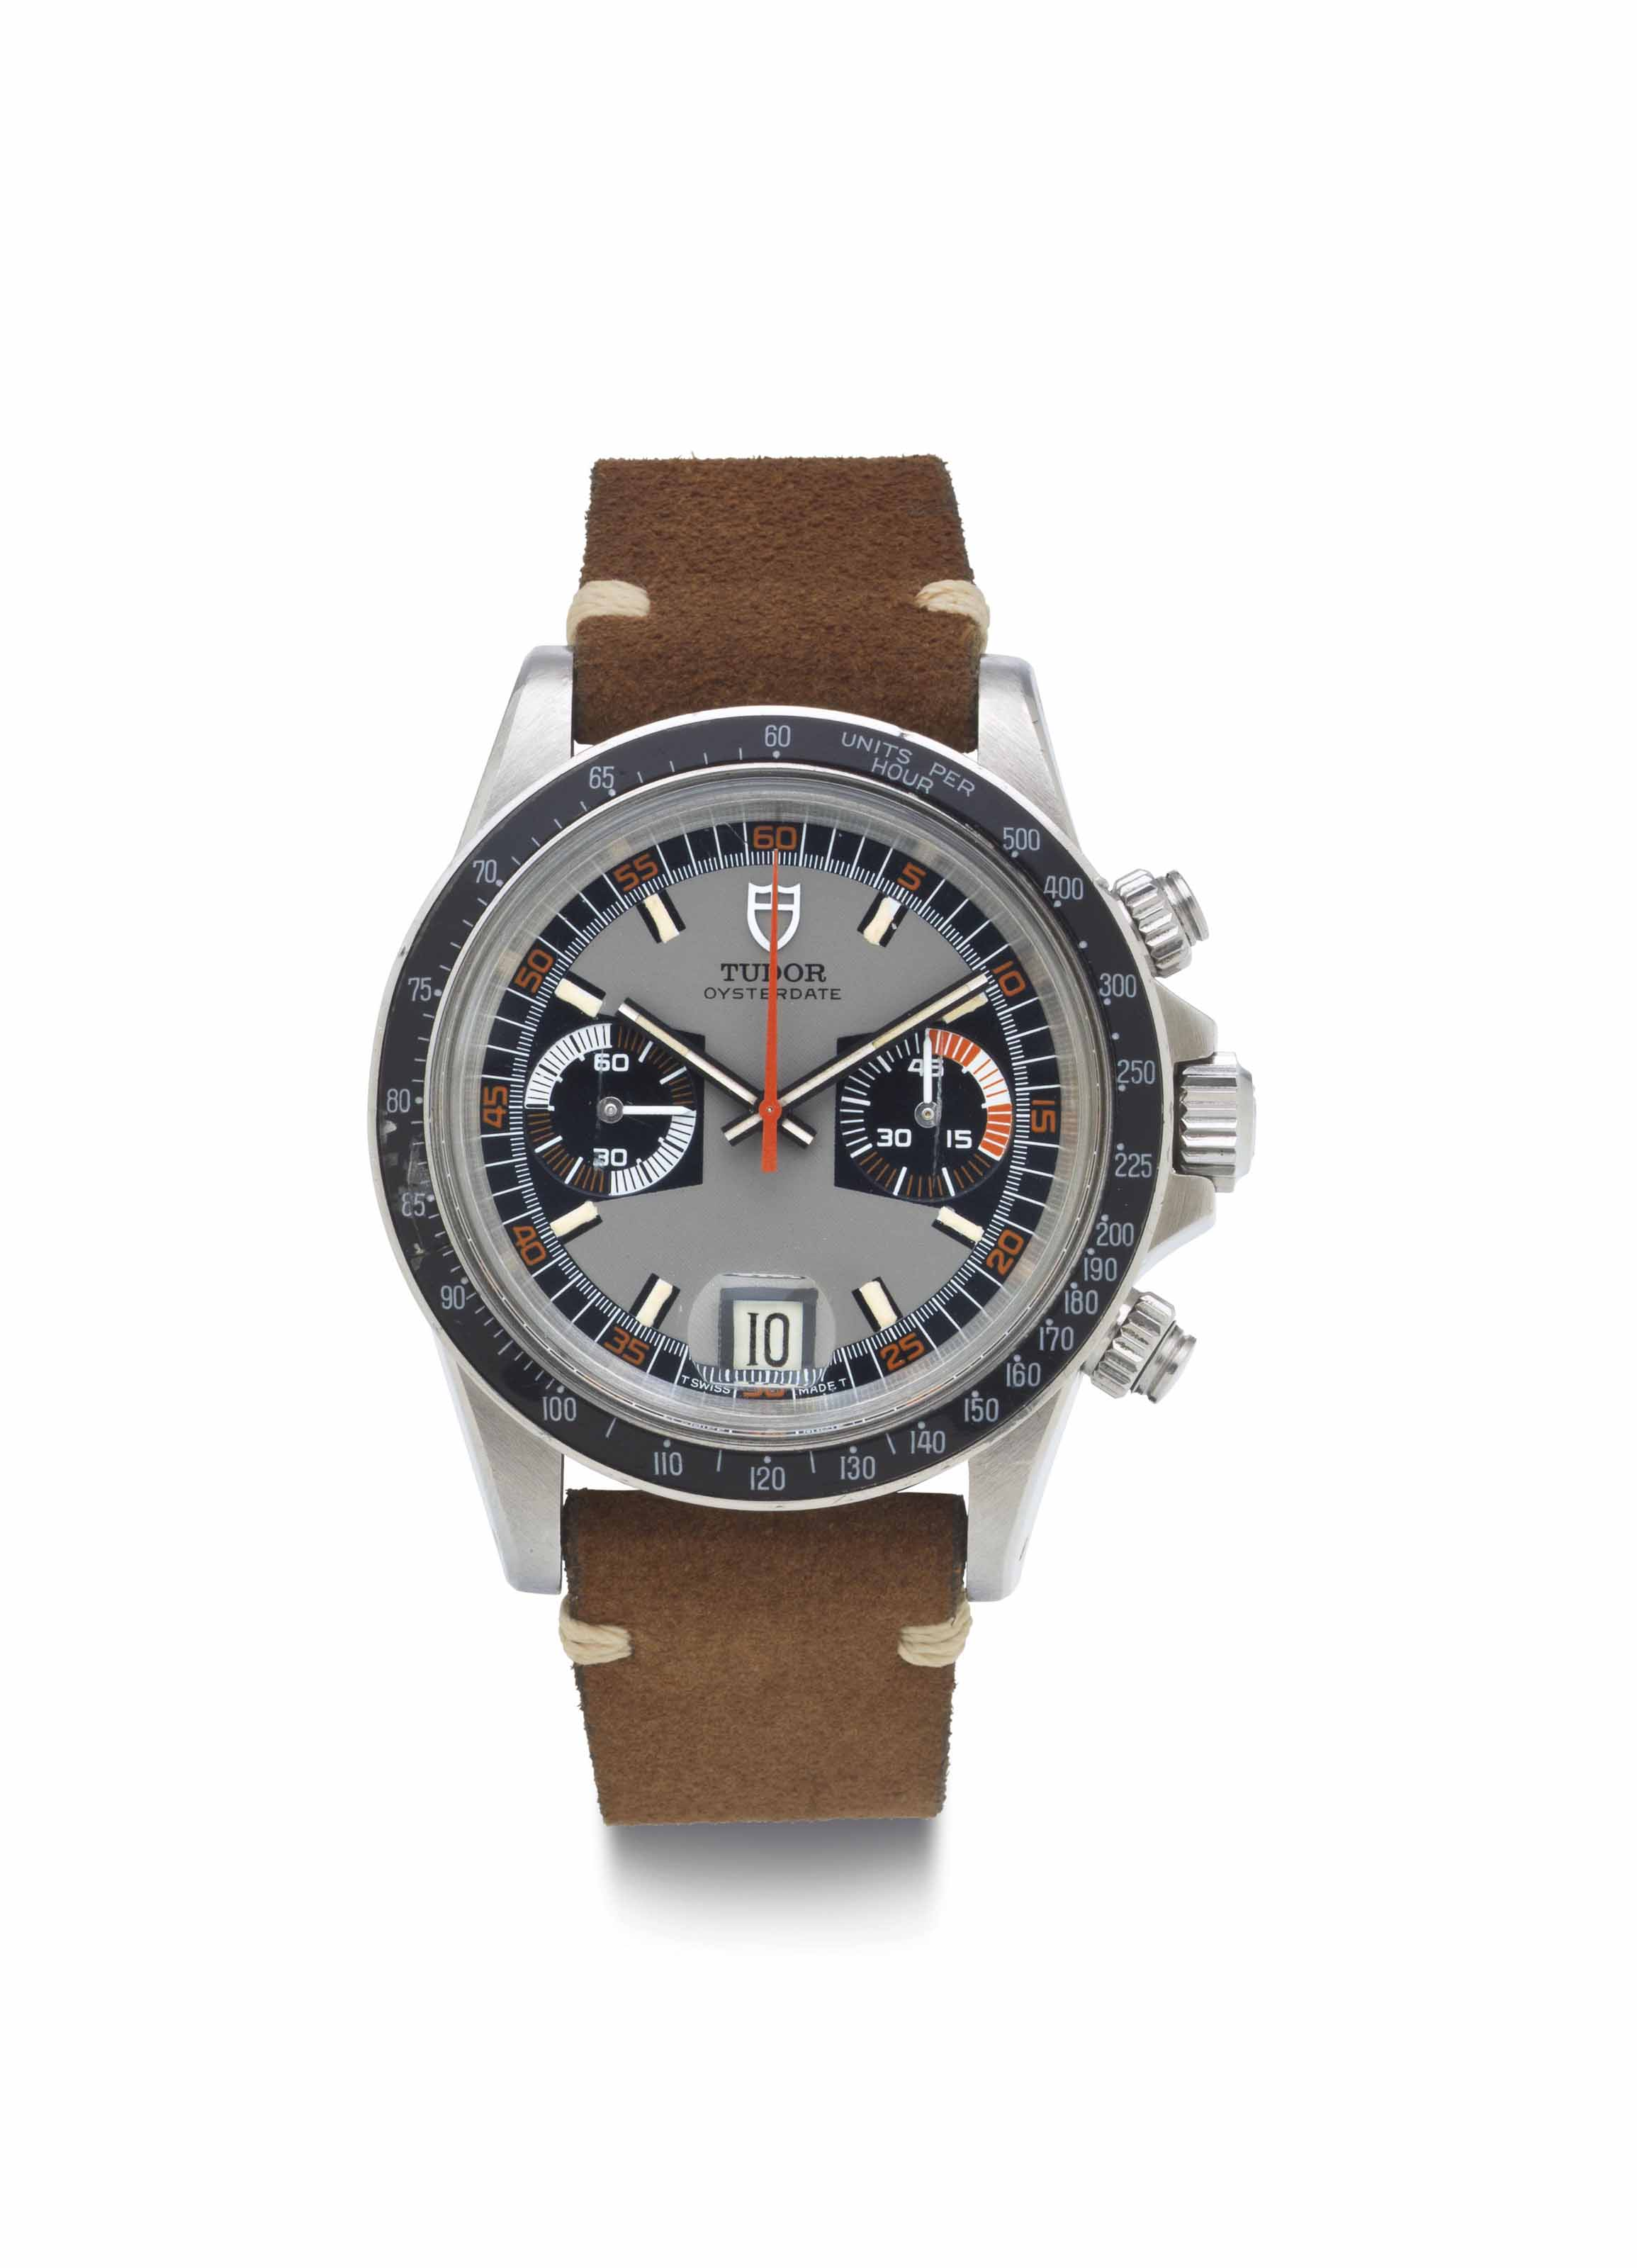 Tudor. A Fine Stainless Steel Chronograph Wristwatch with Date